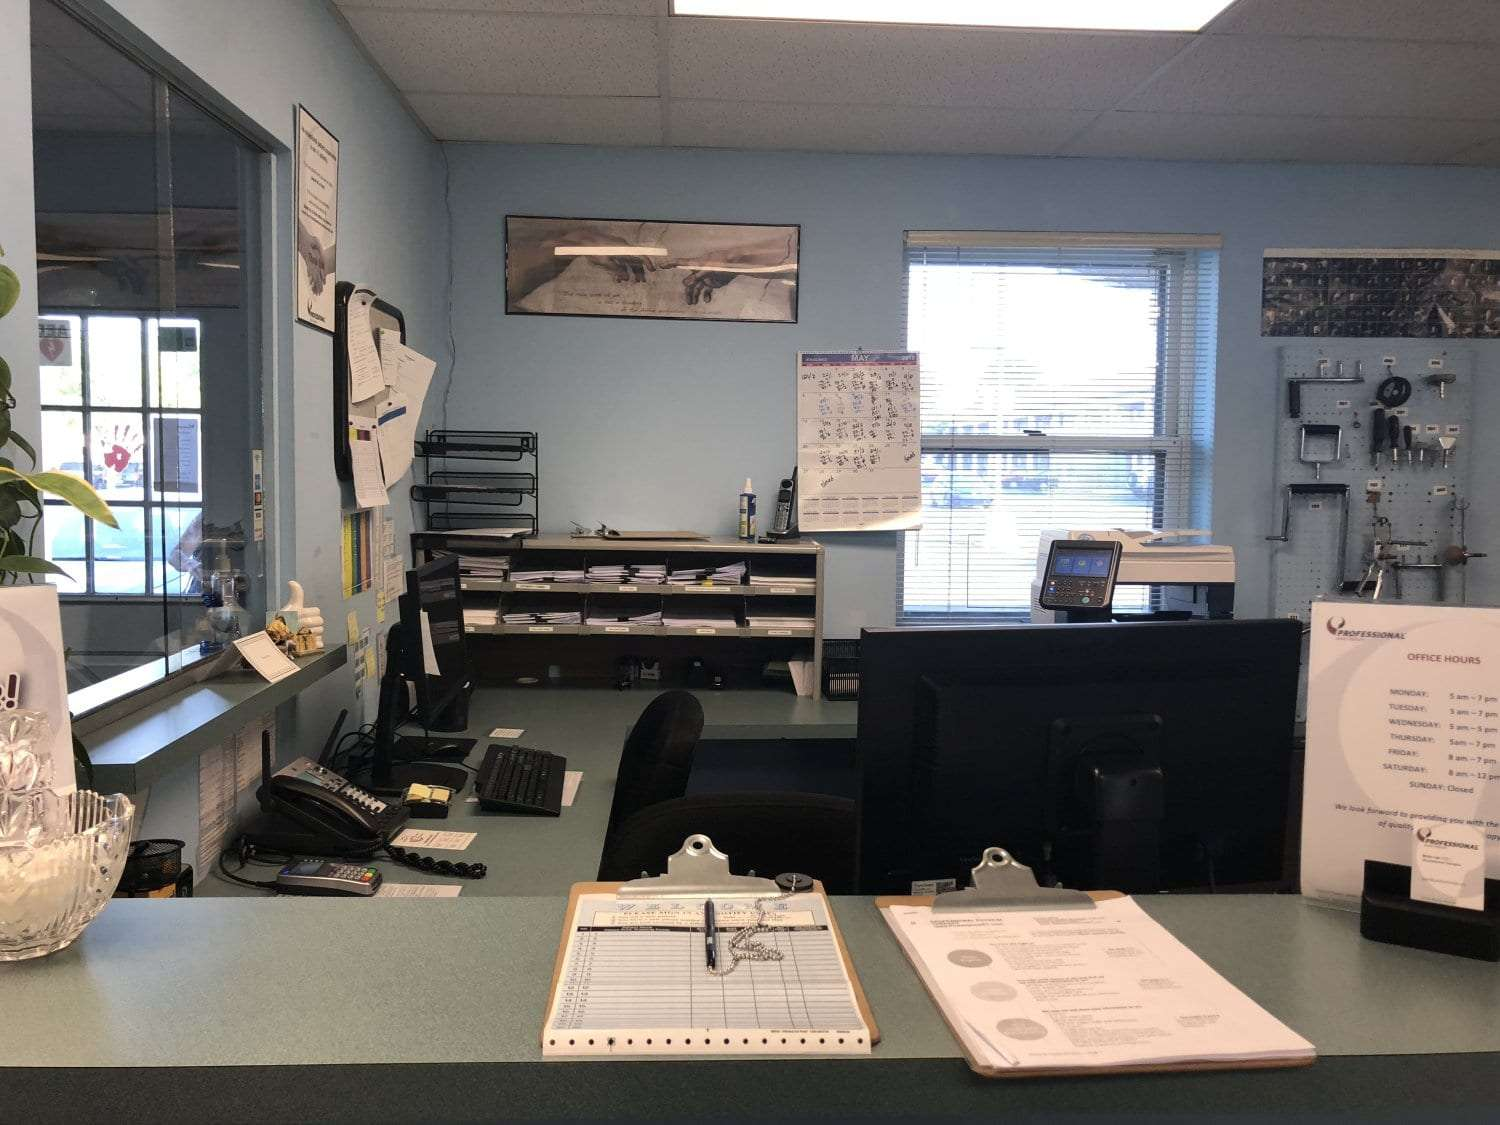 This is an image of our receptionist's desk at our physical therapy clinic in Union, New Jersey.